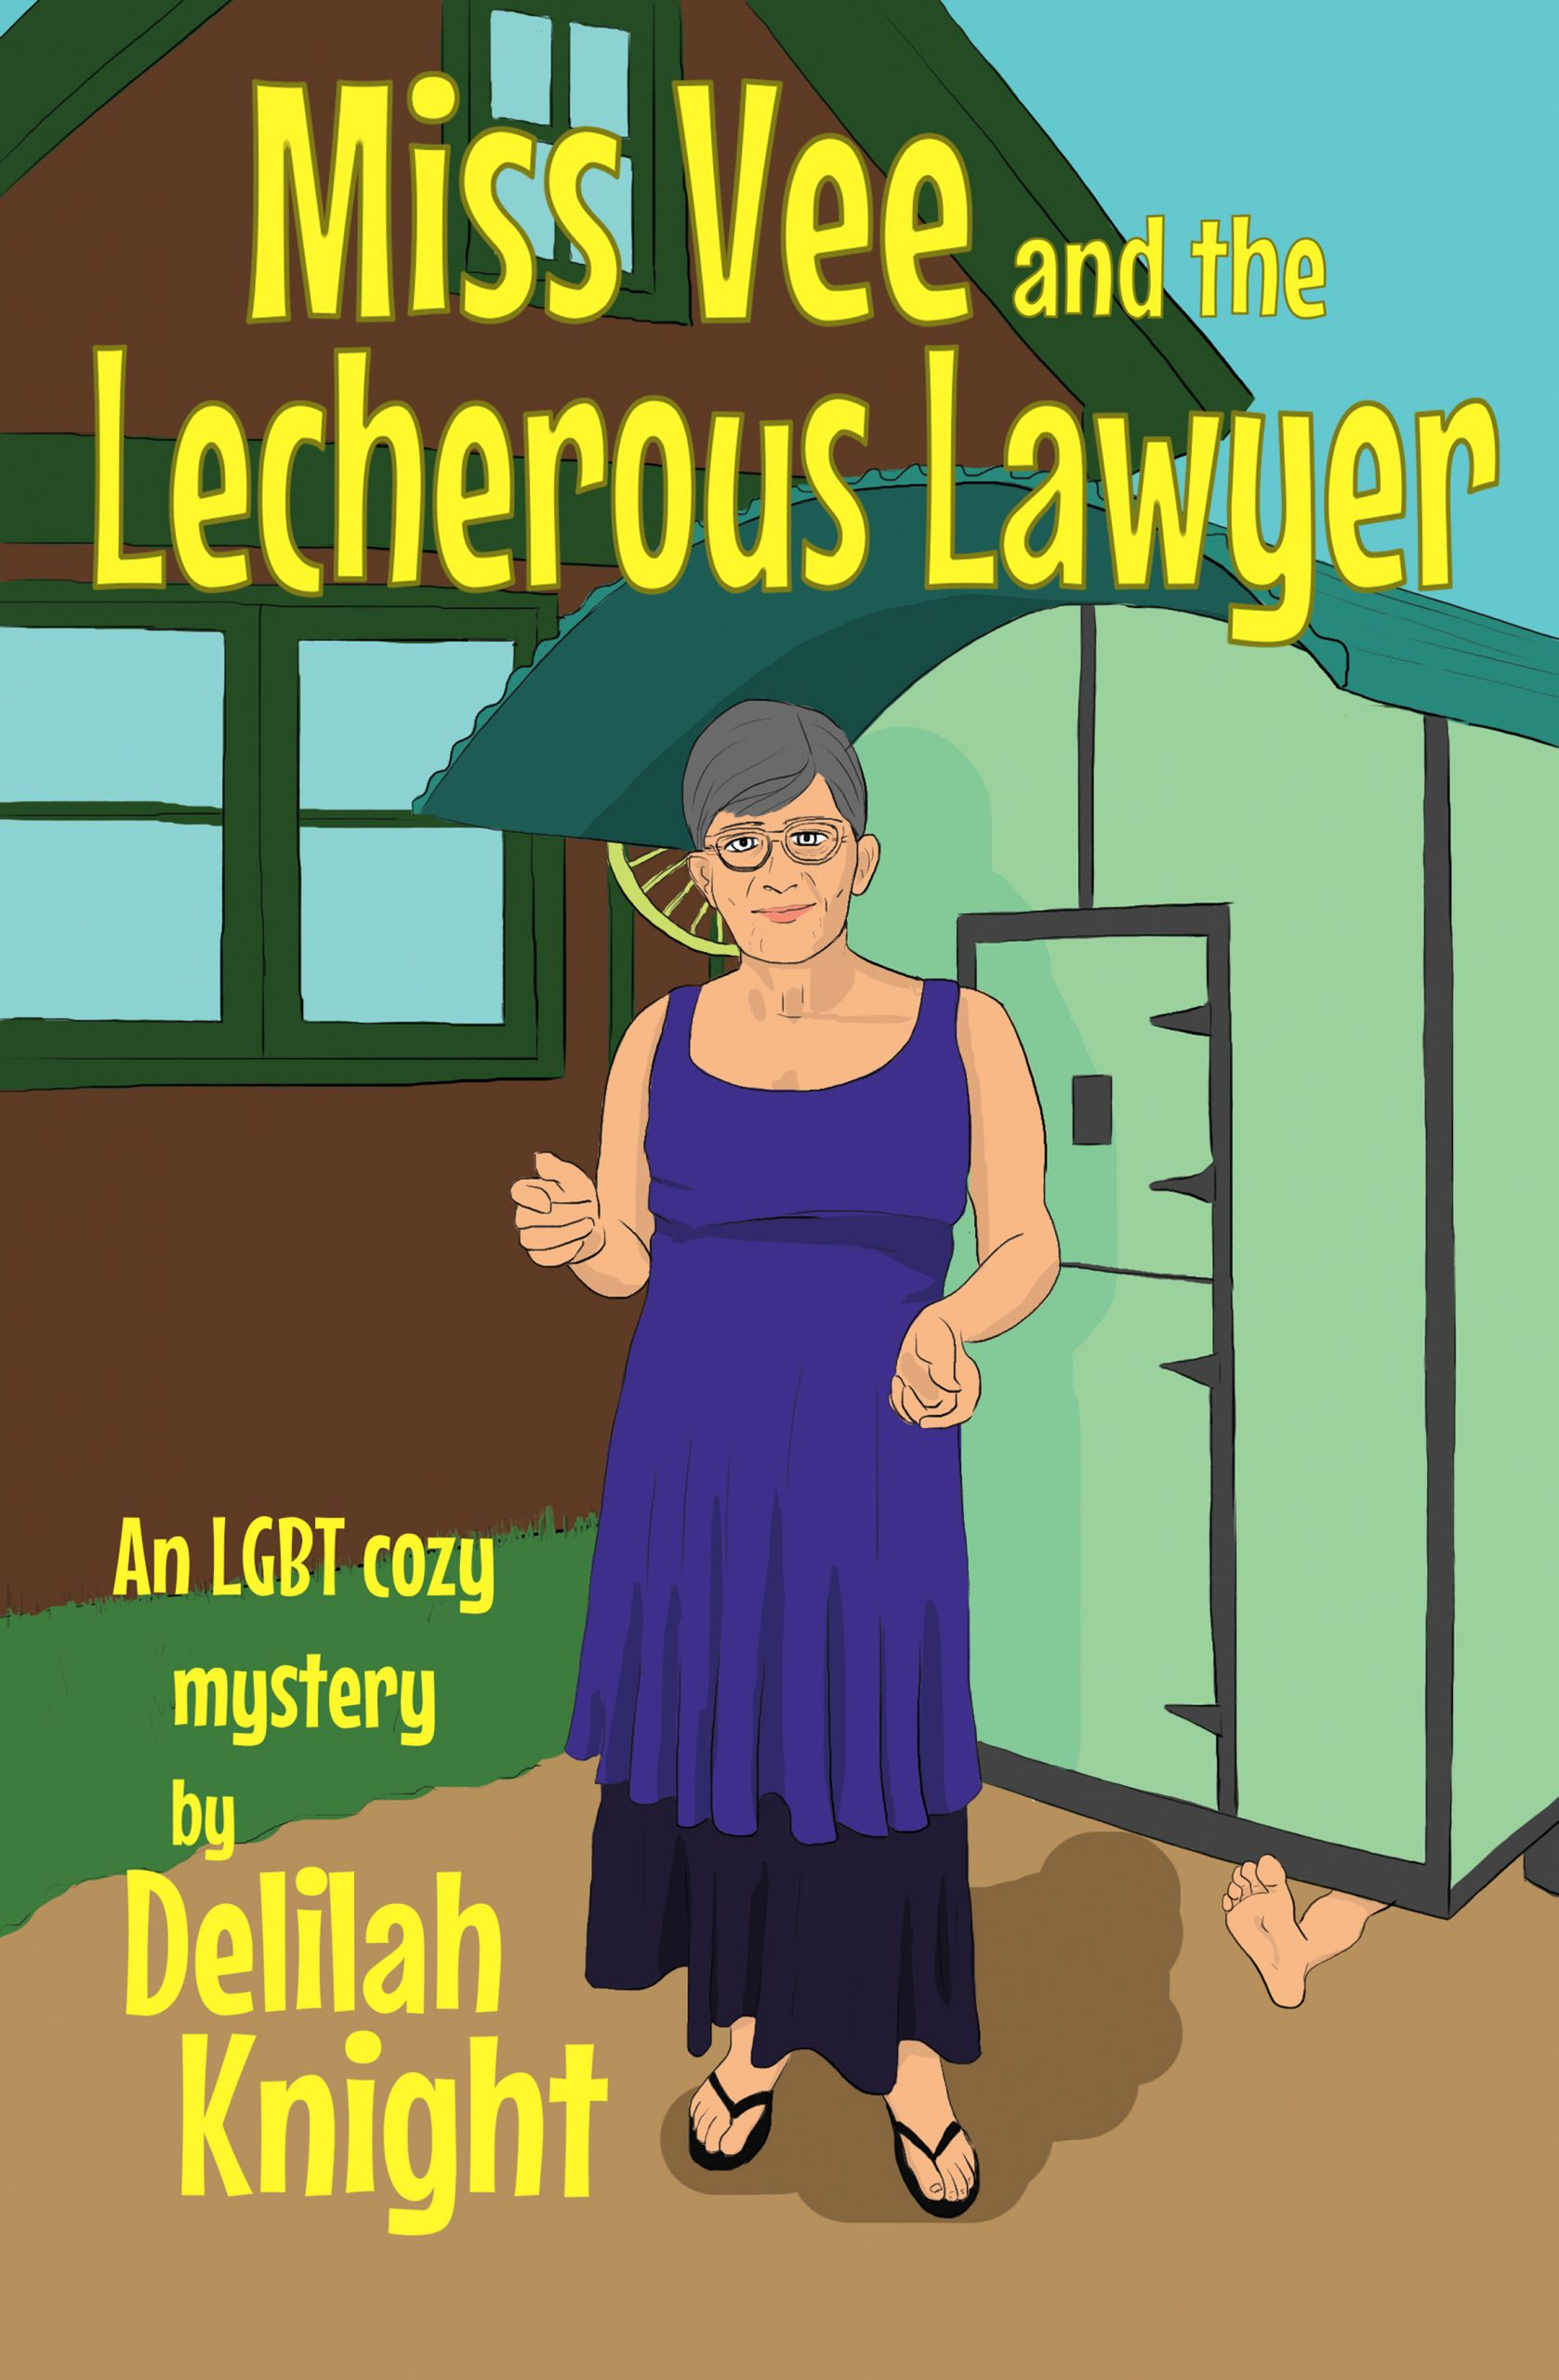 Miss Vee and the Lecherous Lawyer